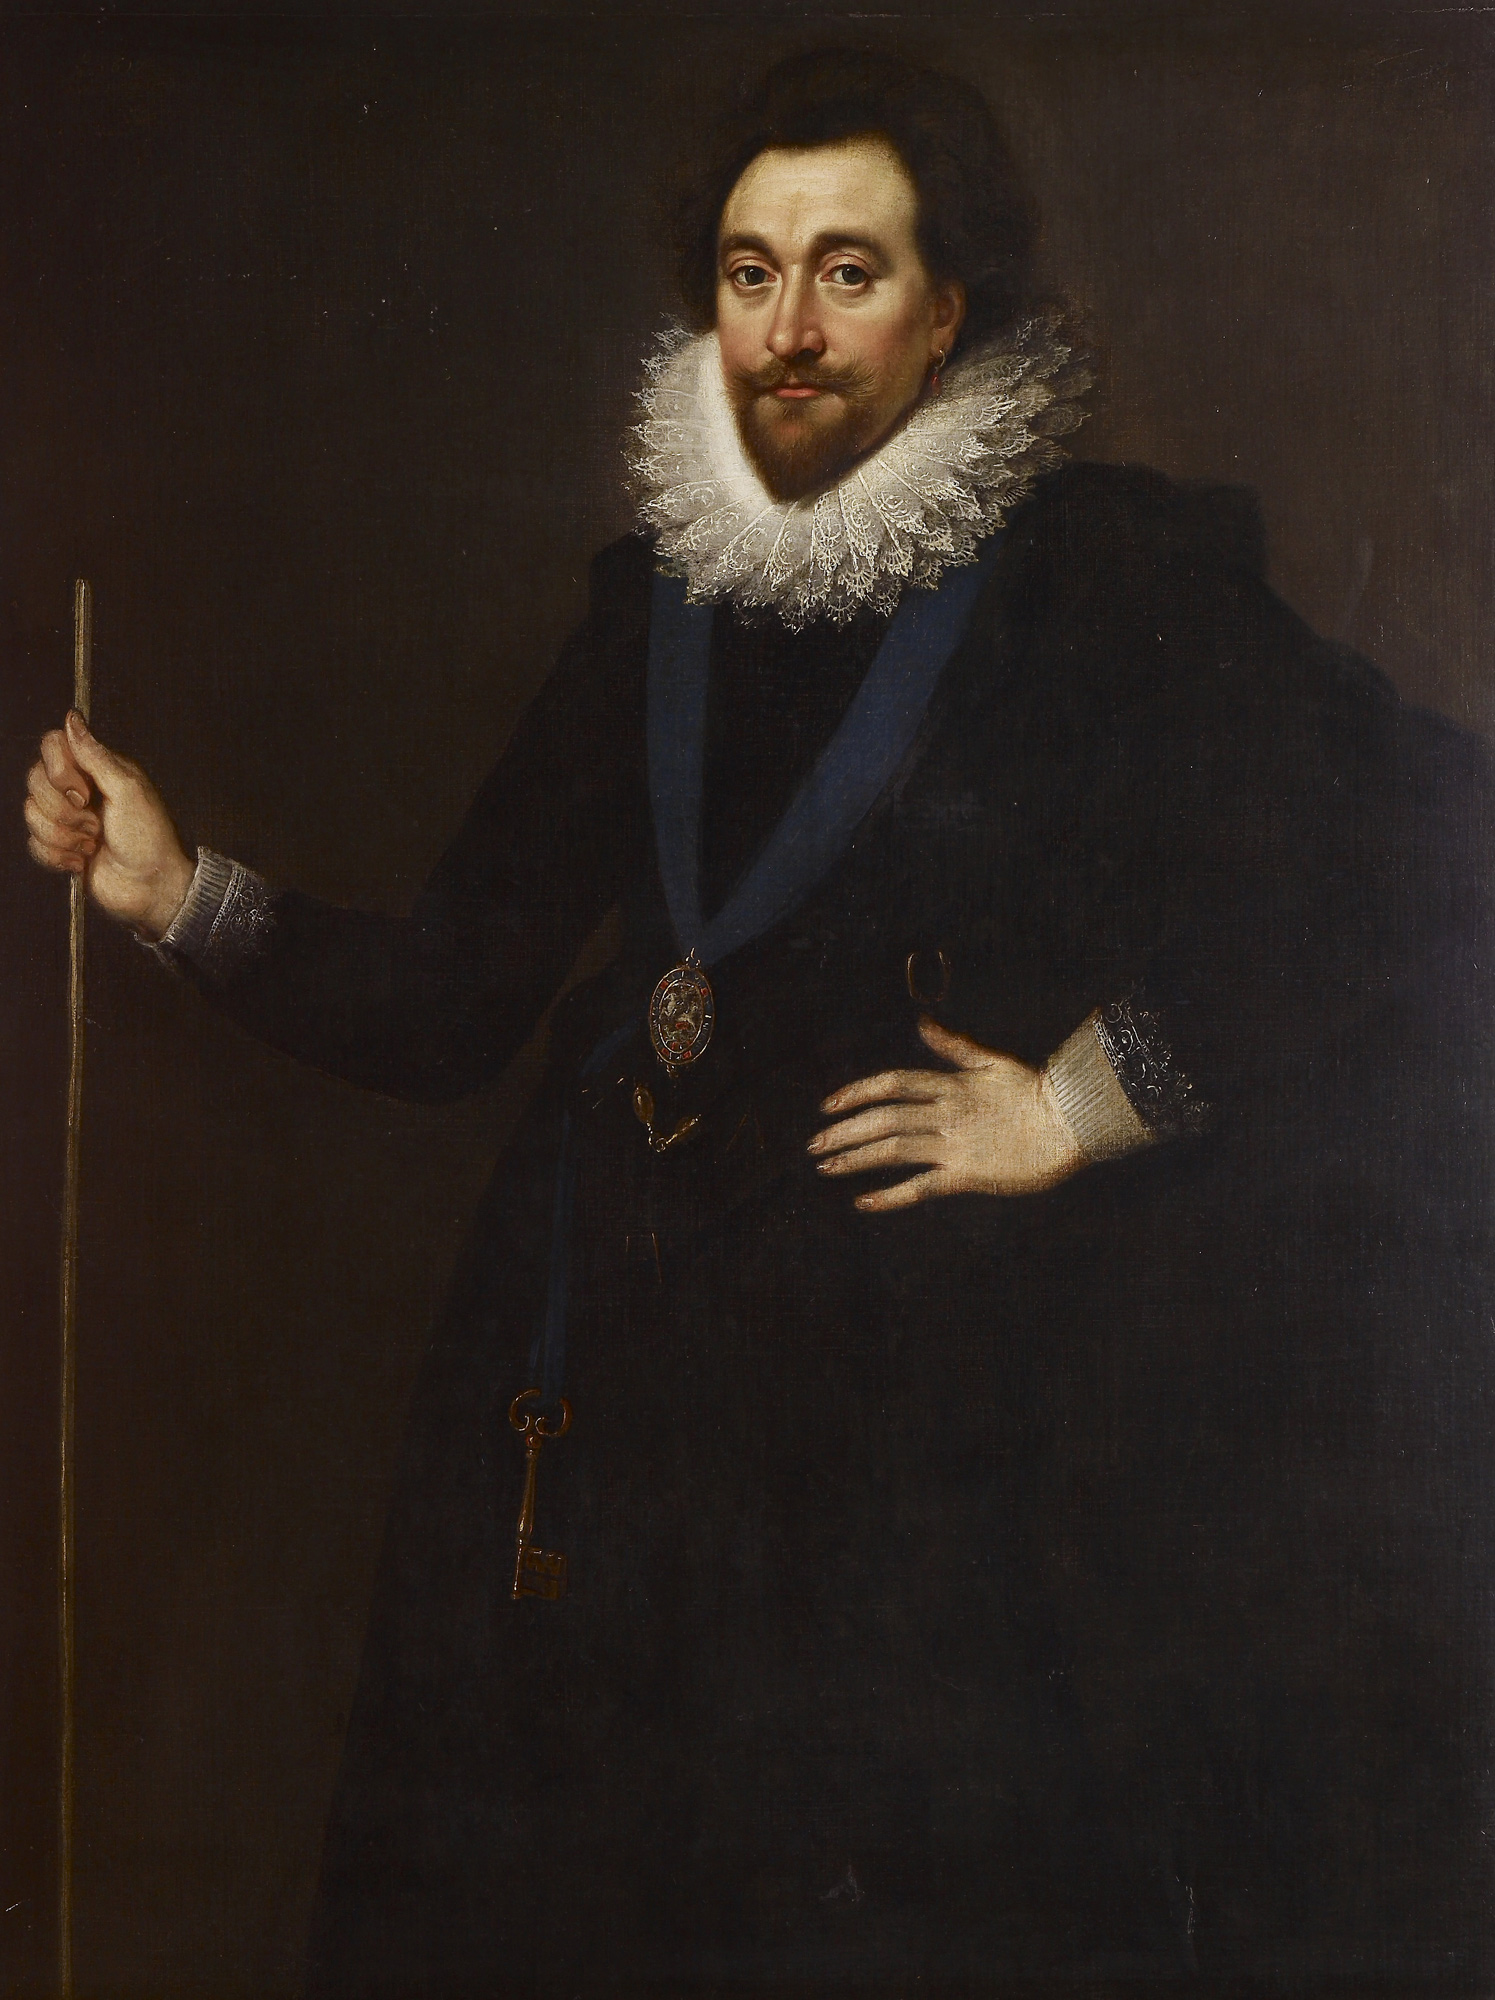 Portrait of Henry Wriothesley, 3rd Earl of Southampton, c  1600